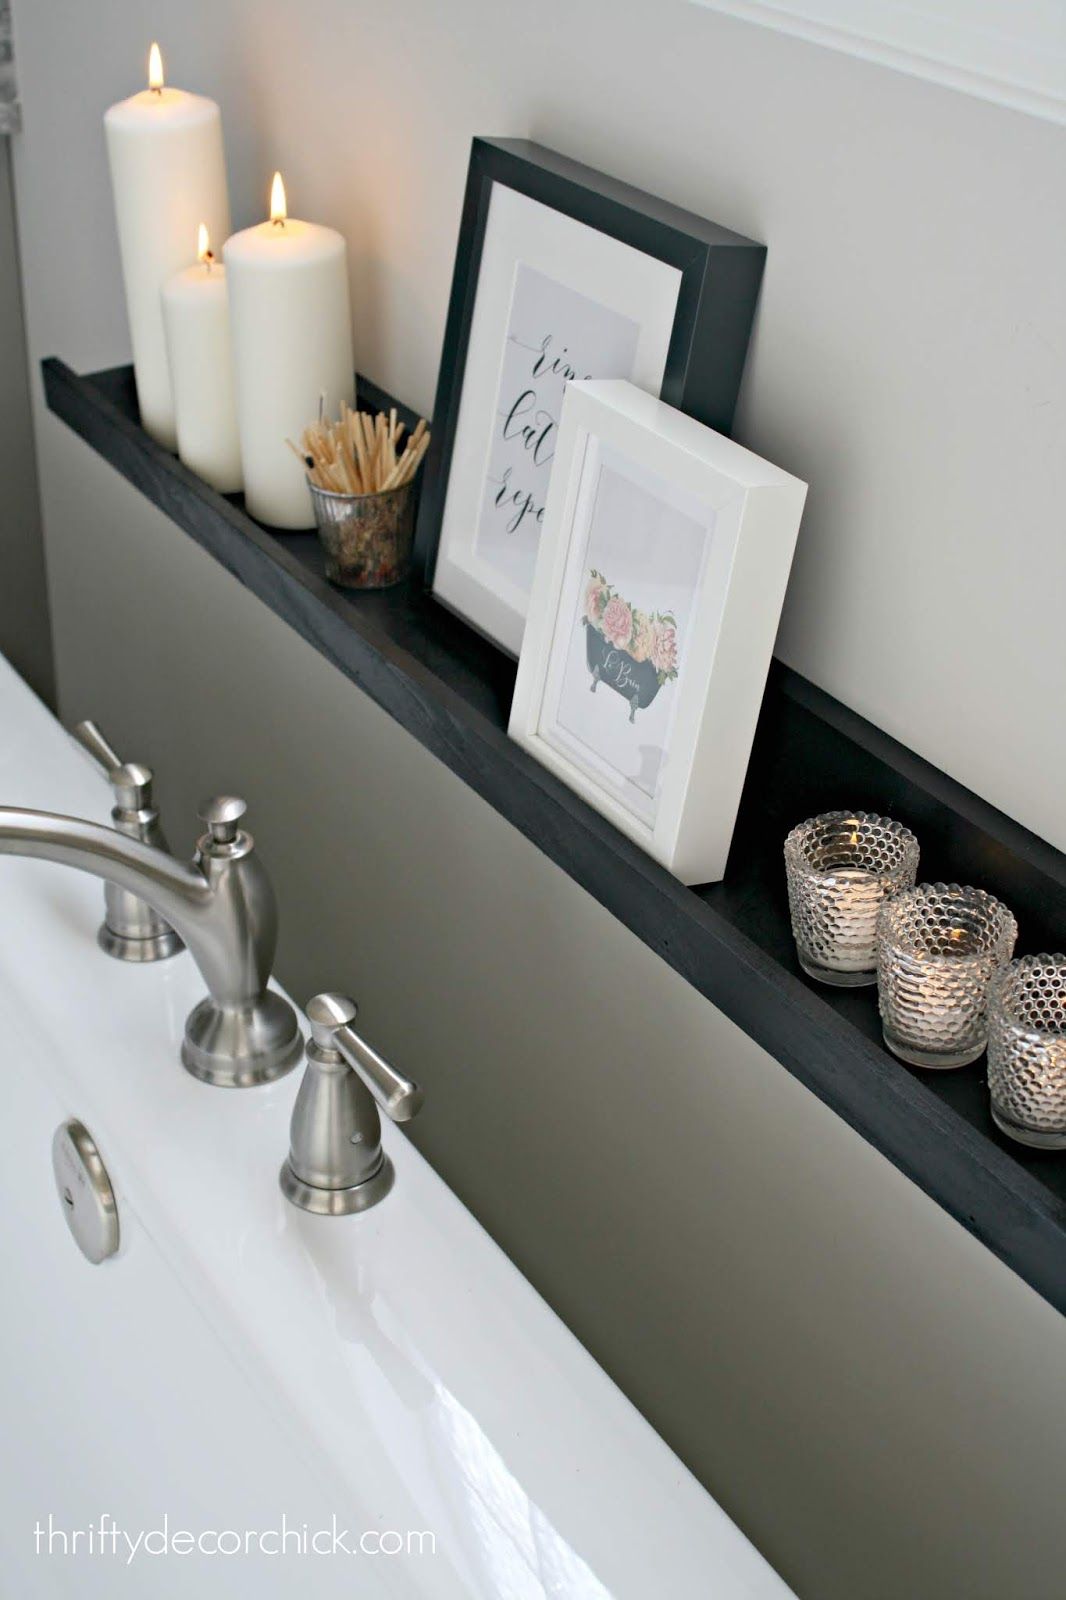 DIY picture ledge project for candles next to tub